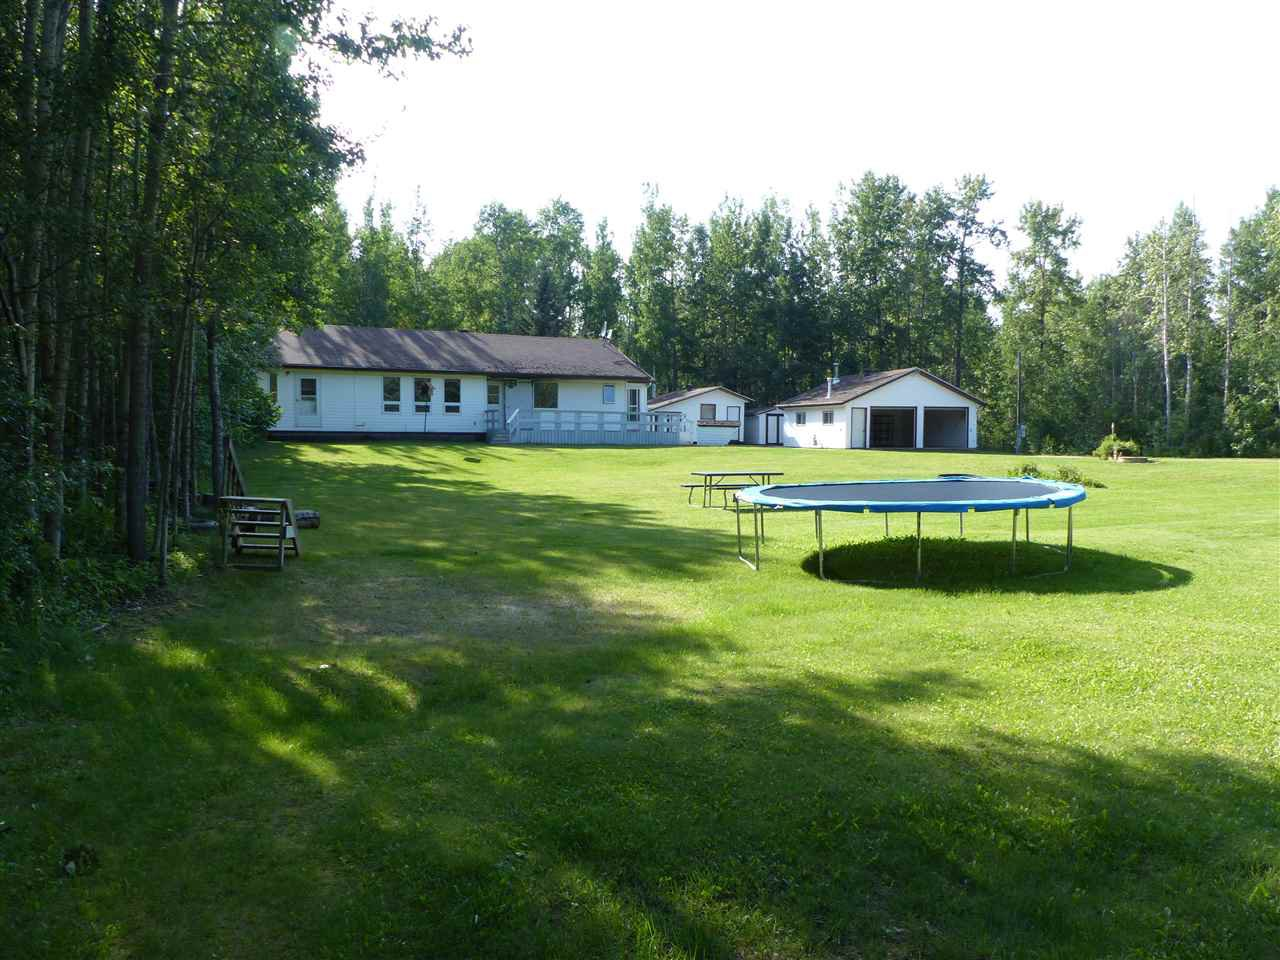 Main Photo: Hwy 771 94 453041 Highway: Rural Wetaskiwin County House for sale : MLS®# E4167447